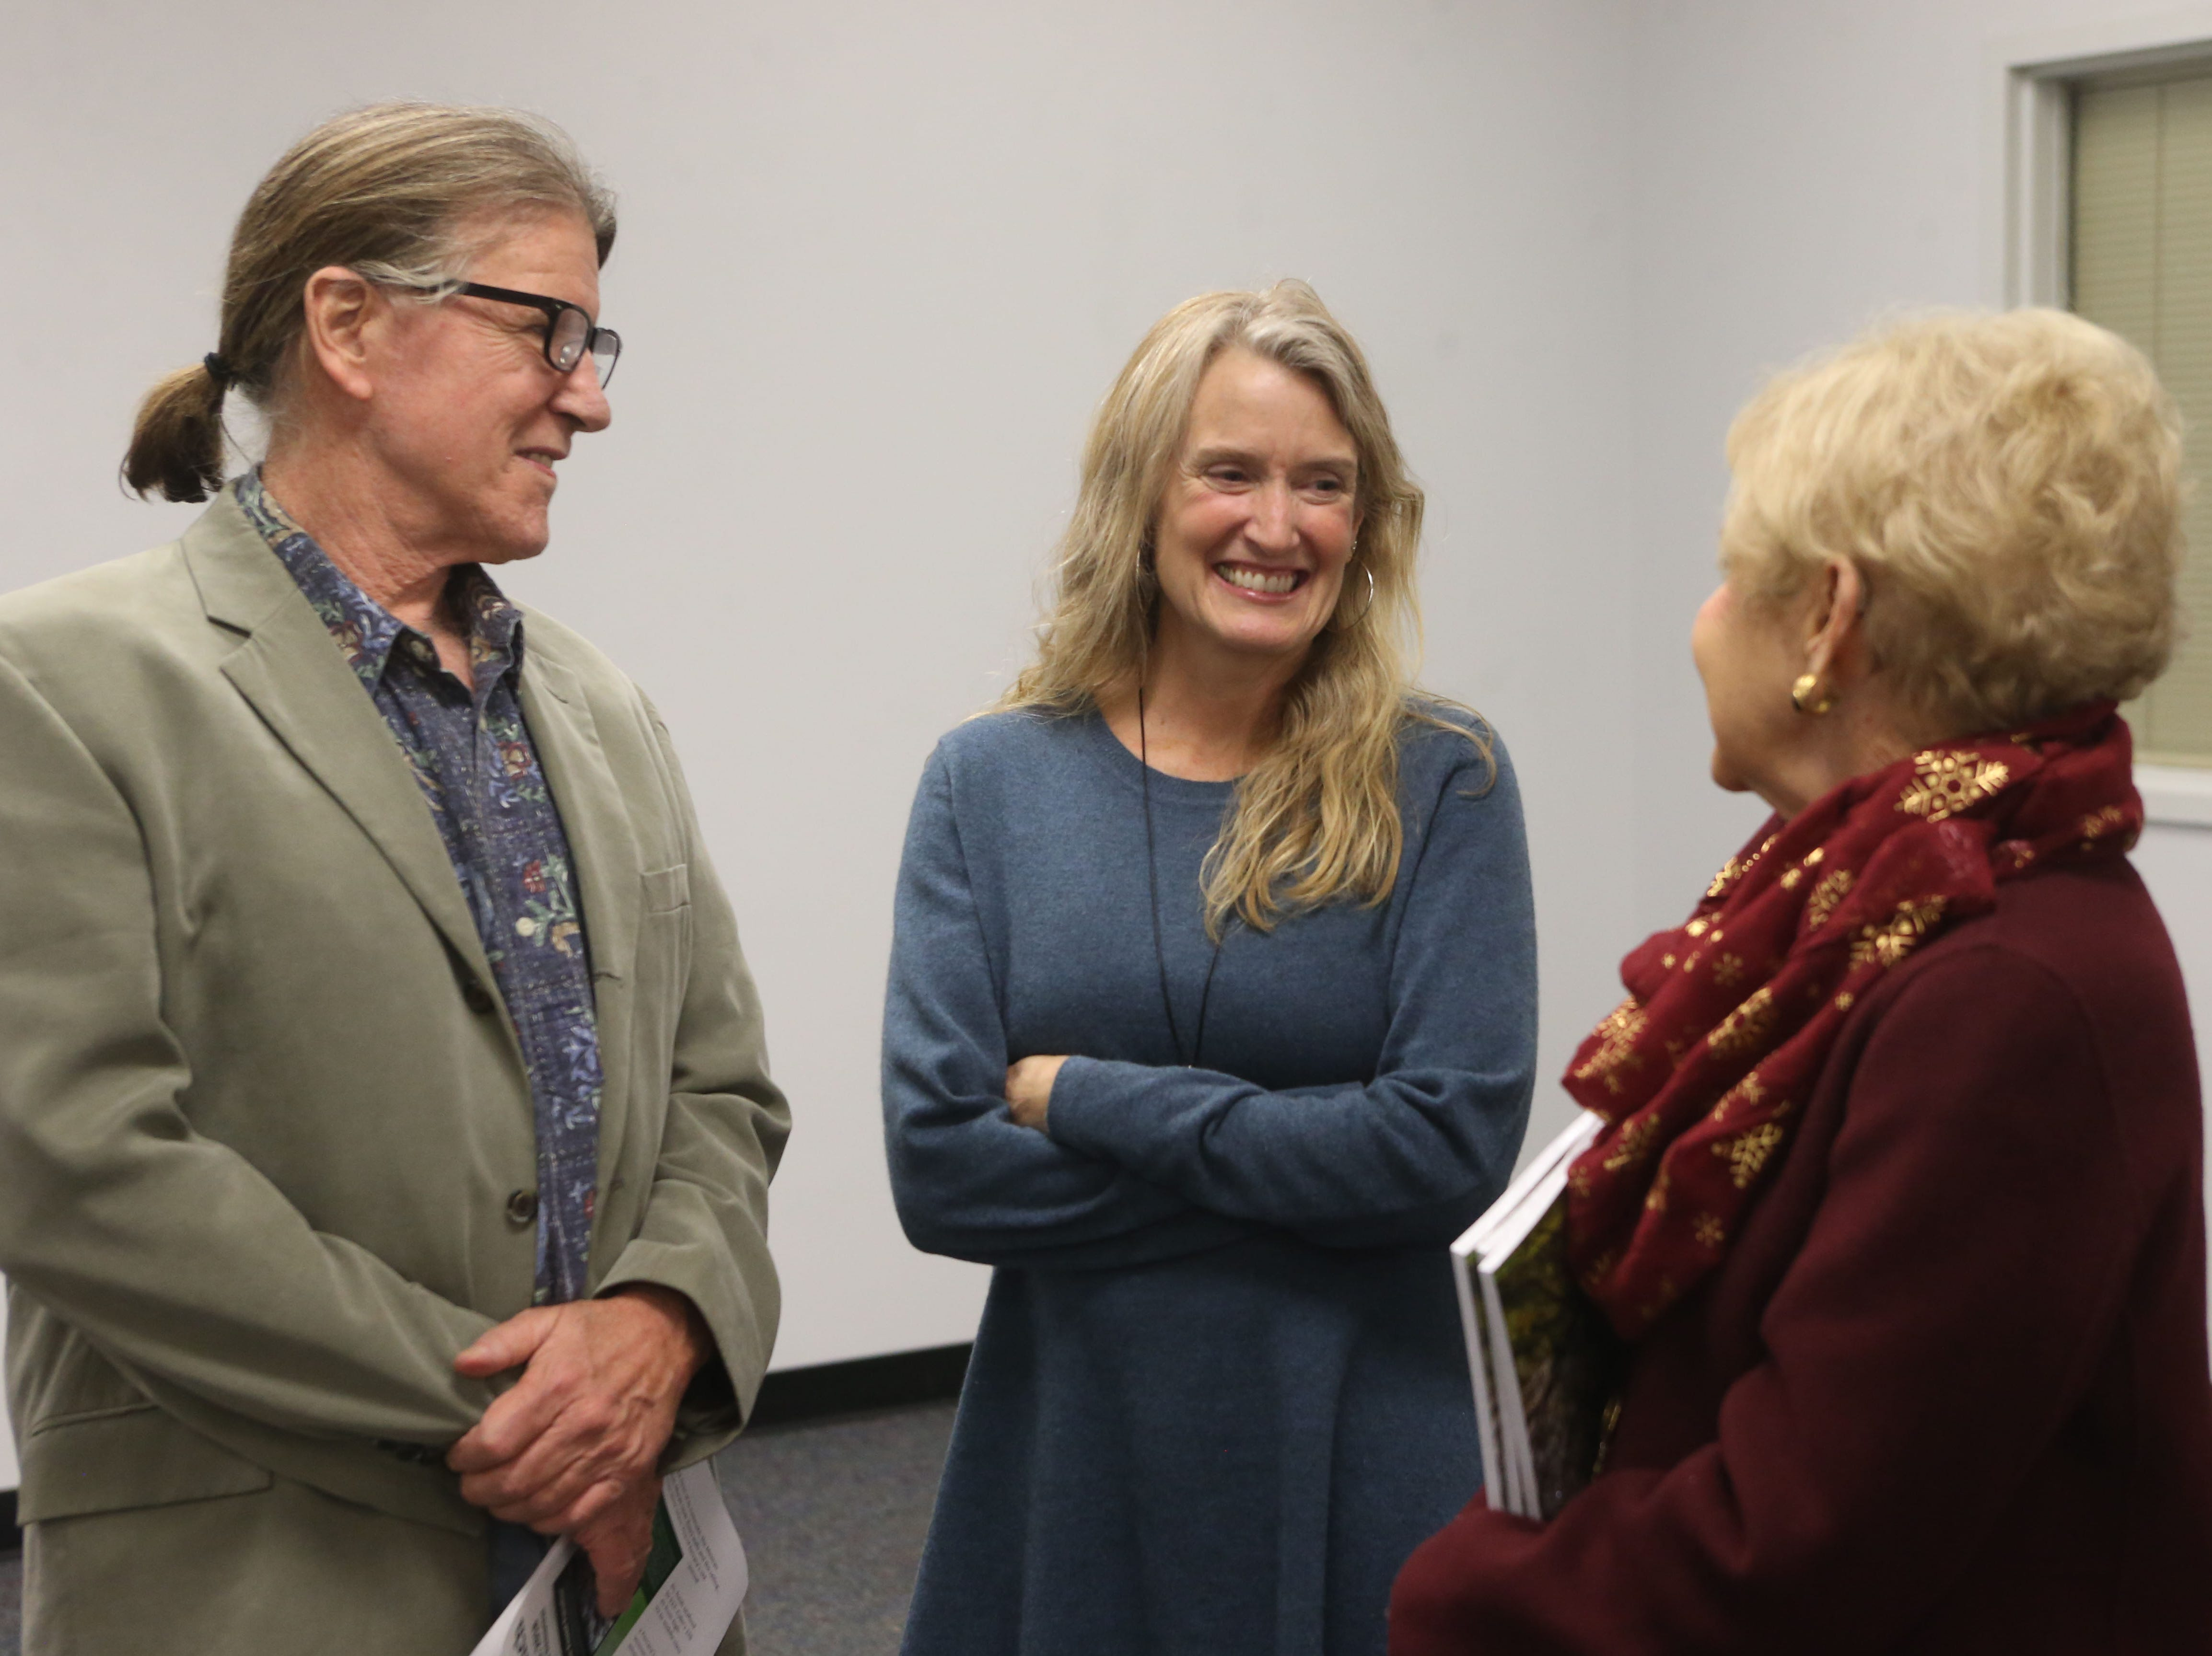 Mike Ferrara, owner of Cabo's Island Grill & Bar, left, with Catherine Ferrara, middle, at a launch party held at the Tallahassee Democrat for Gerald Ensley's book, 'We Found Paradise,' Thursday, Dec. 6, 2018.